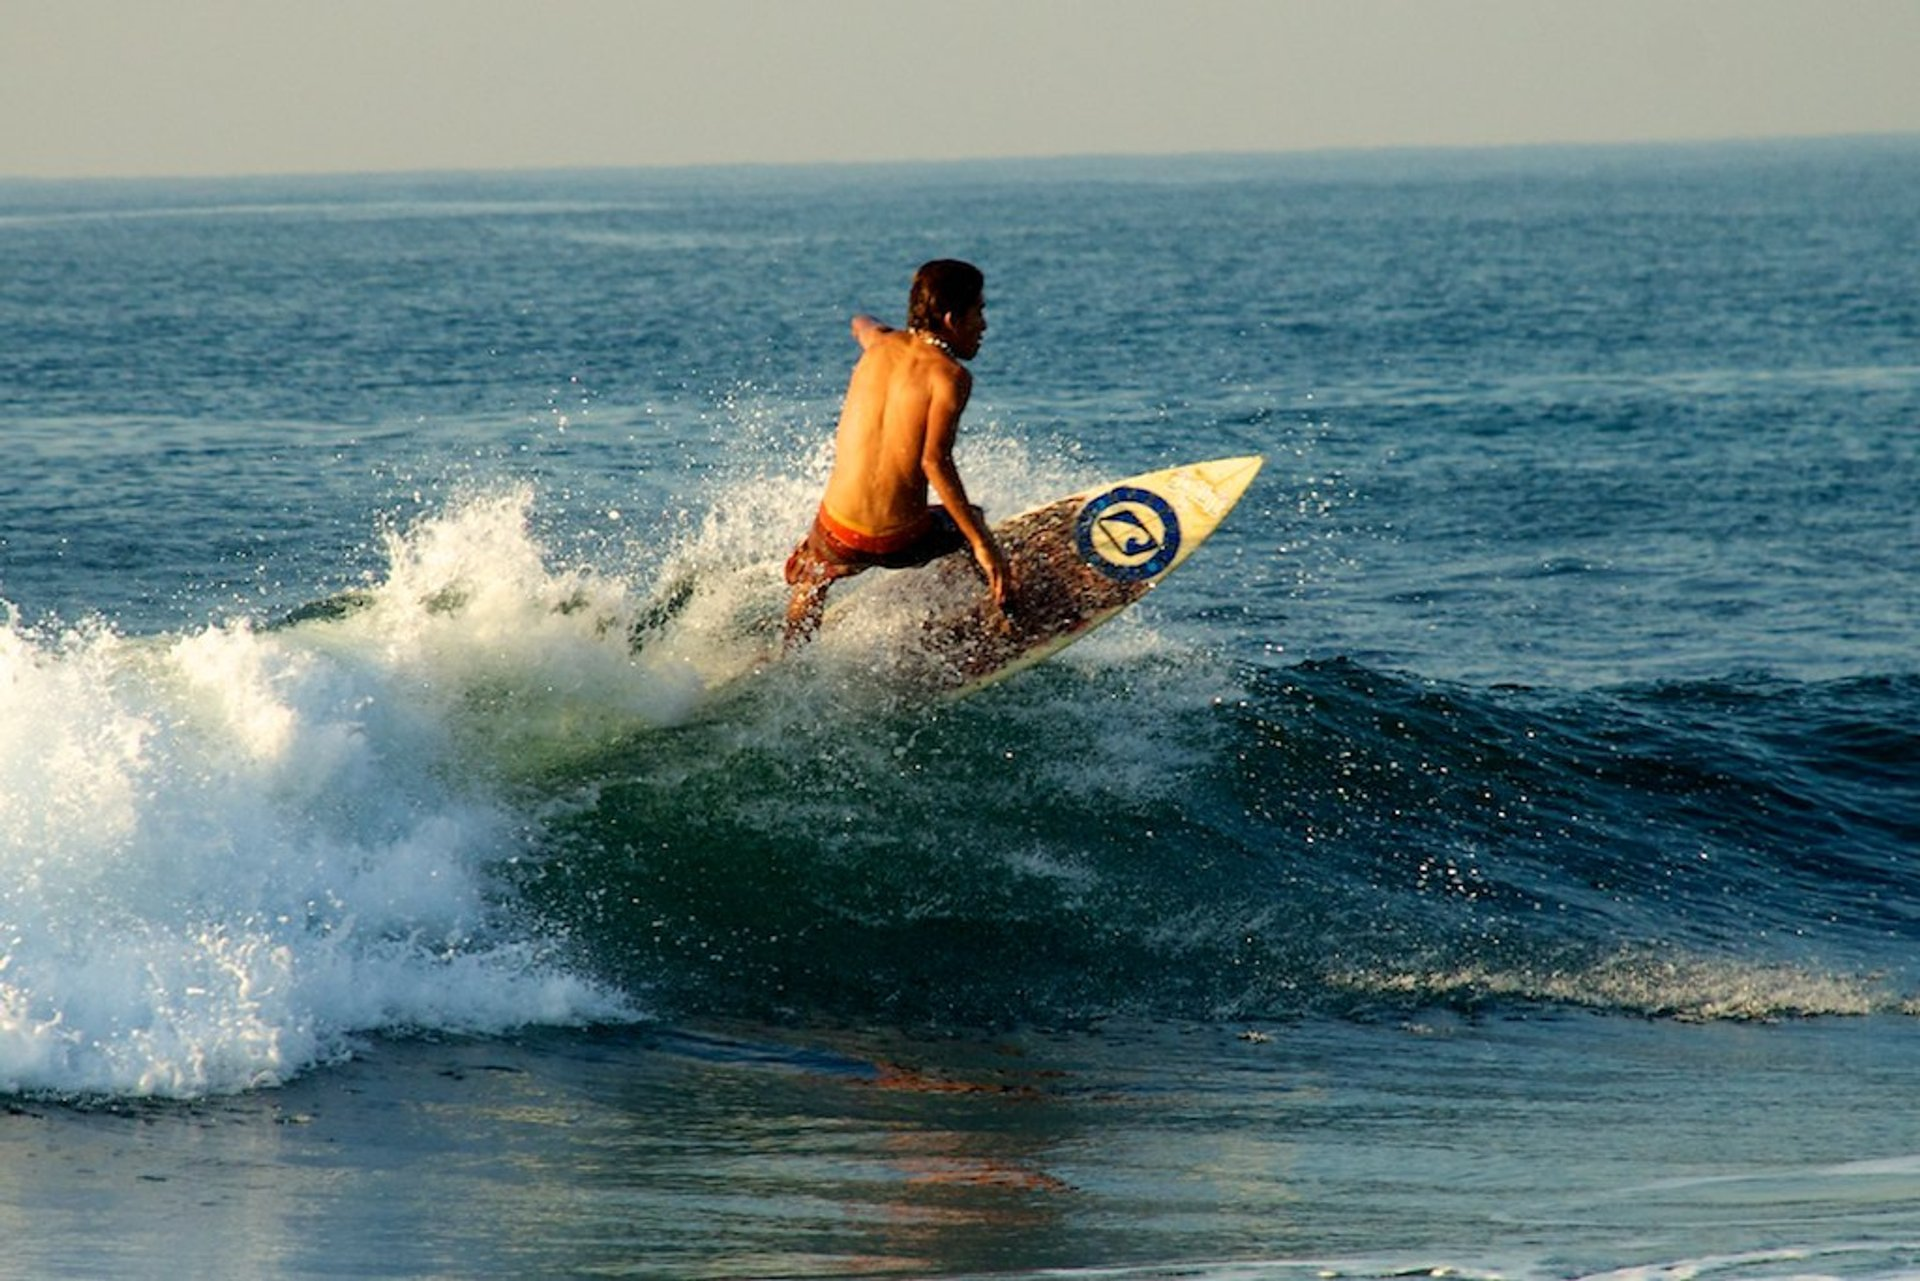 Surfing in Guatemala 2020 - Best Time